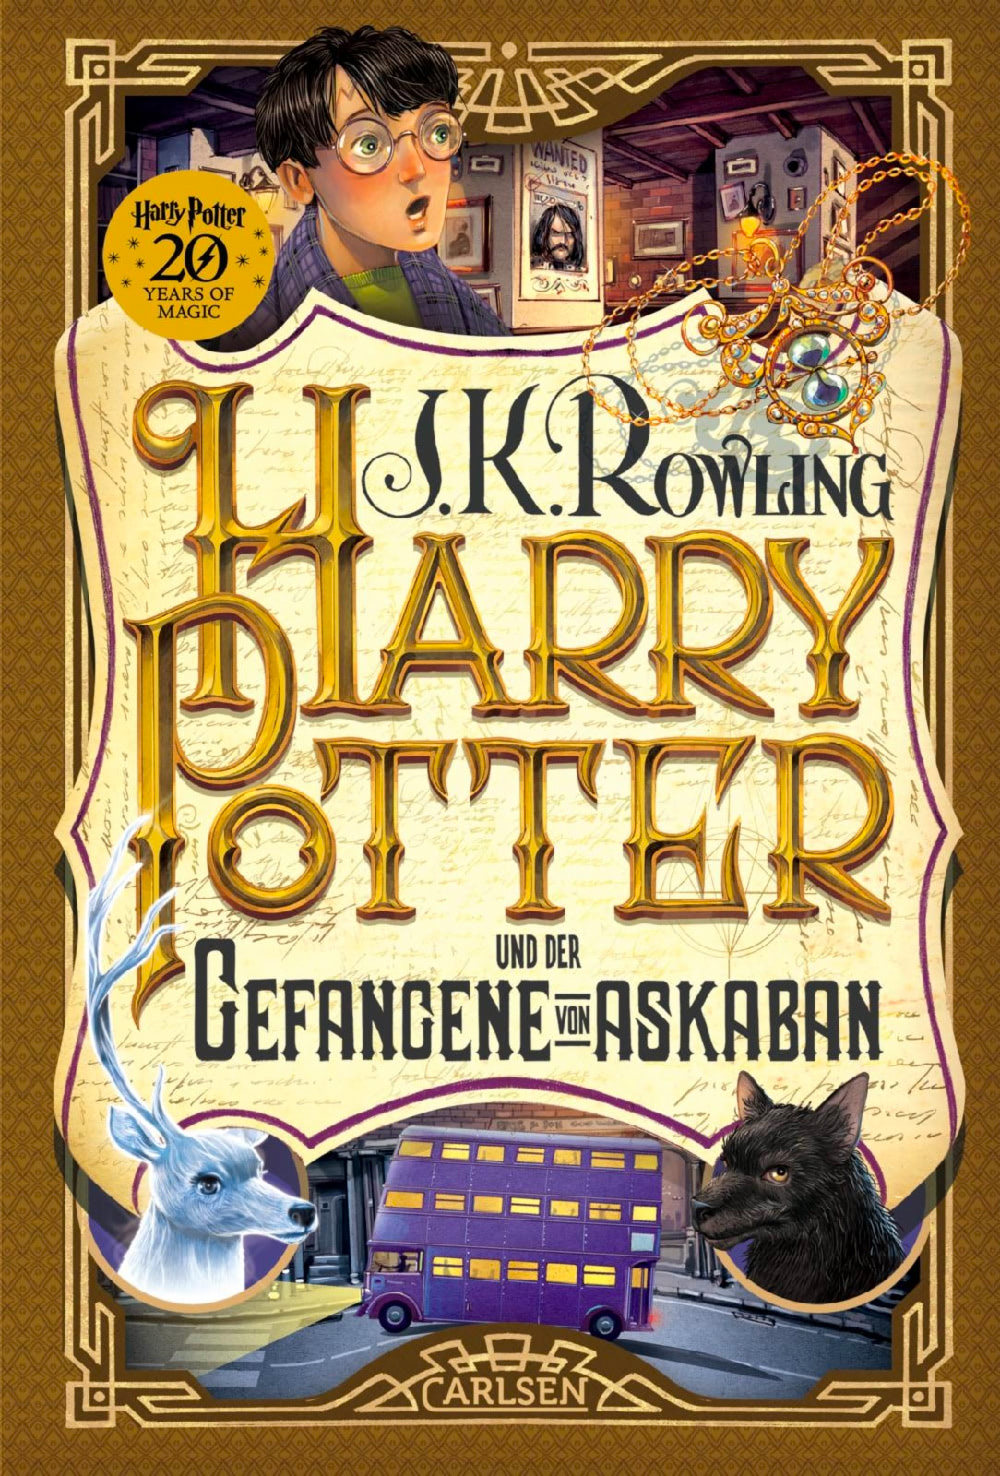 'Prisoner of Azkaban' German '20 Years of Magic' edition